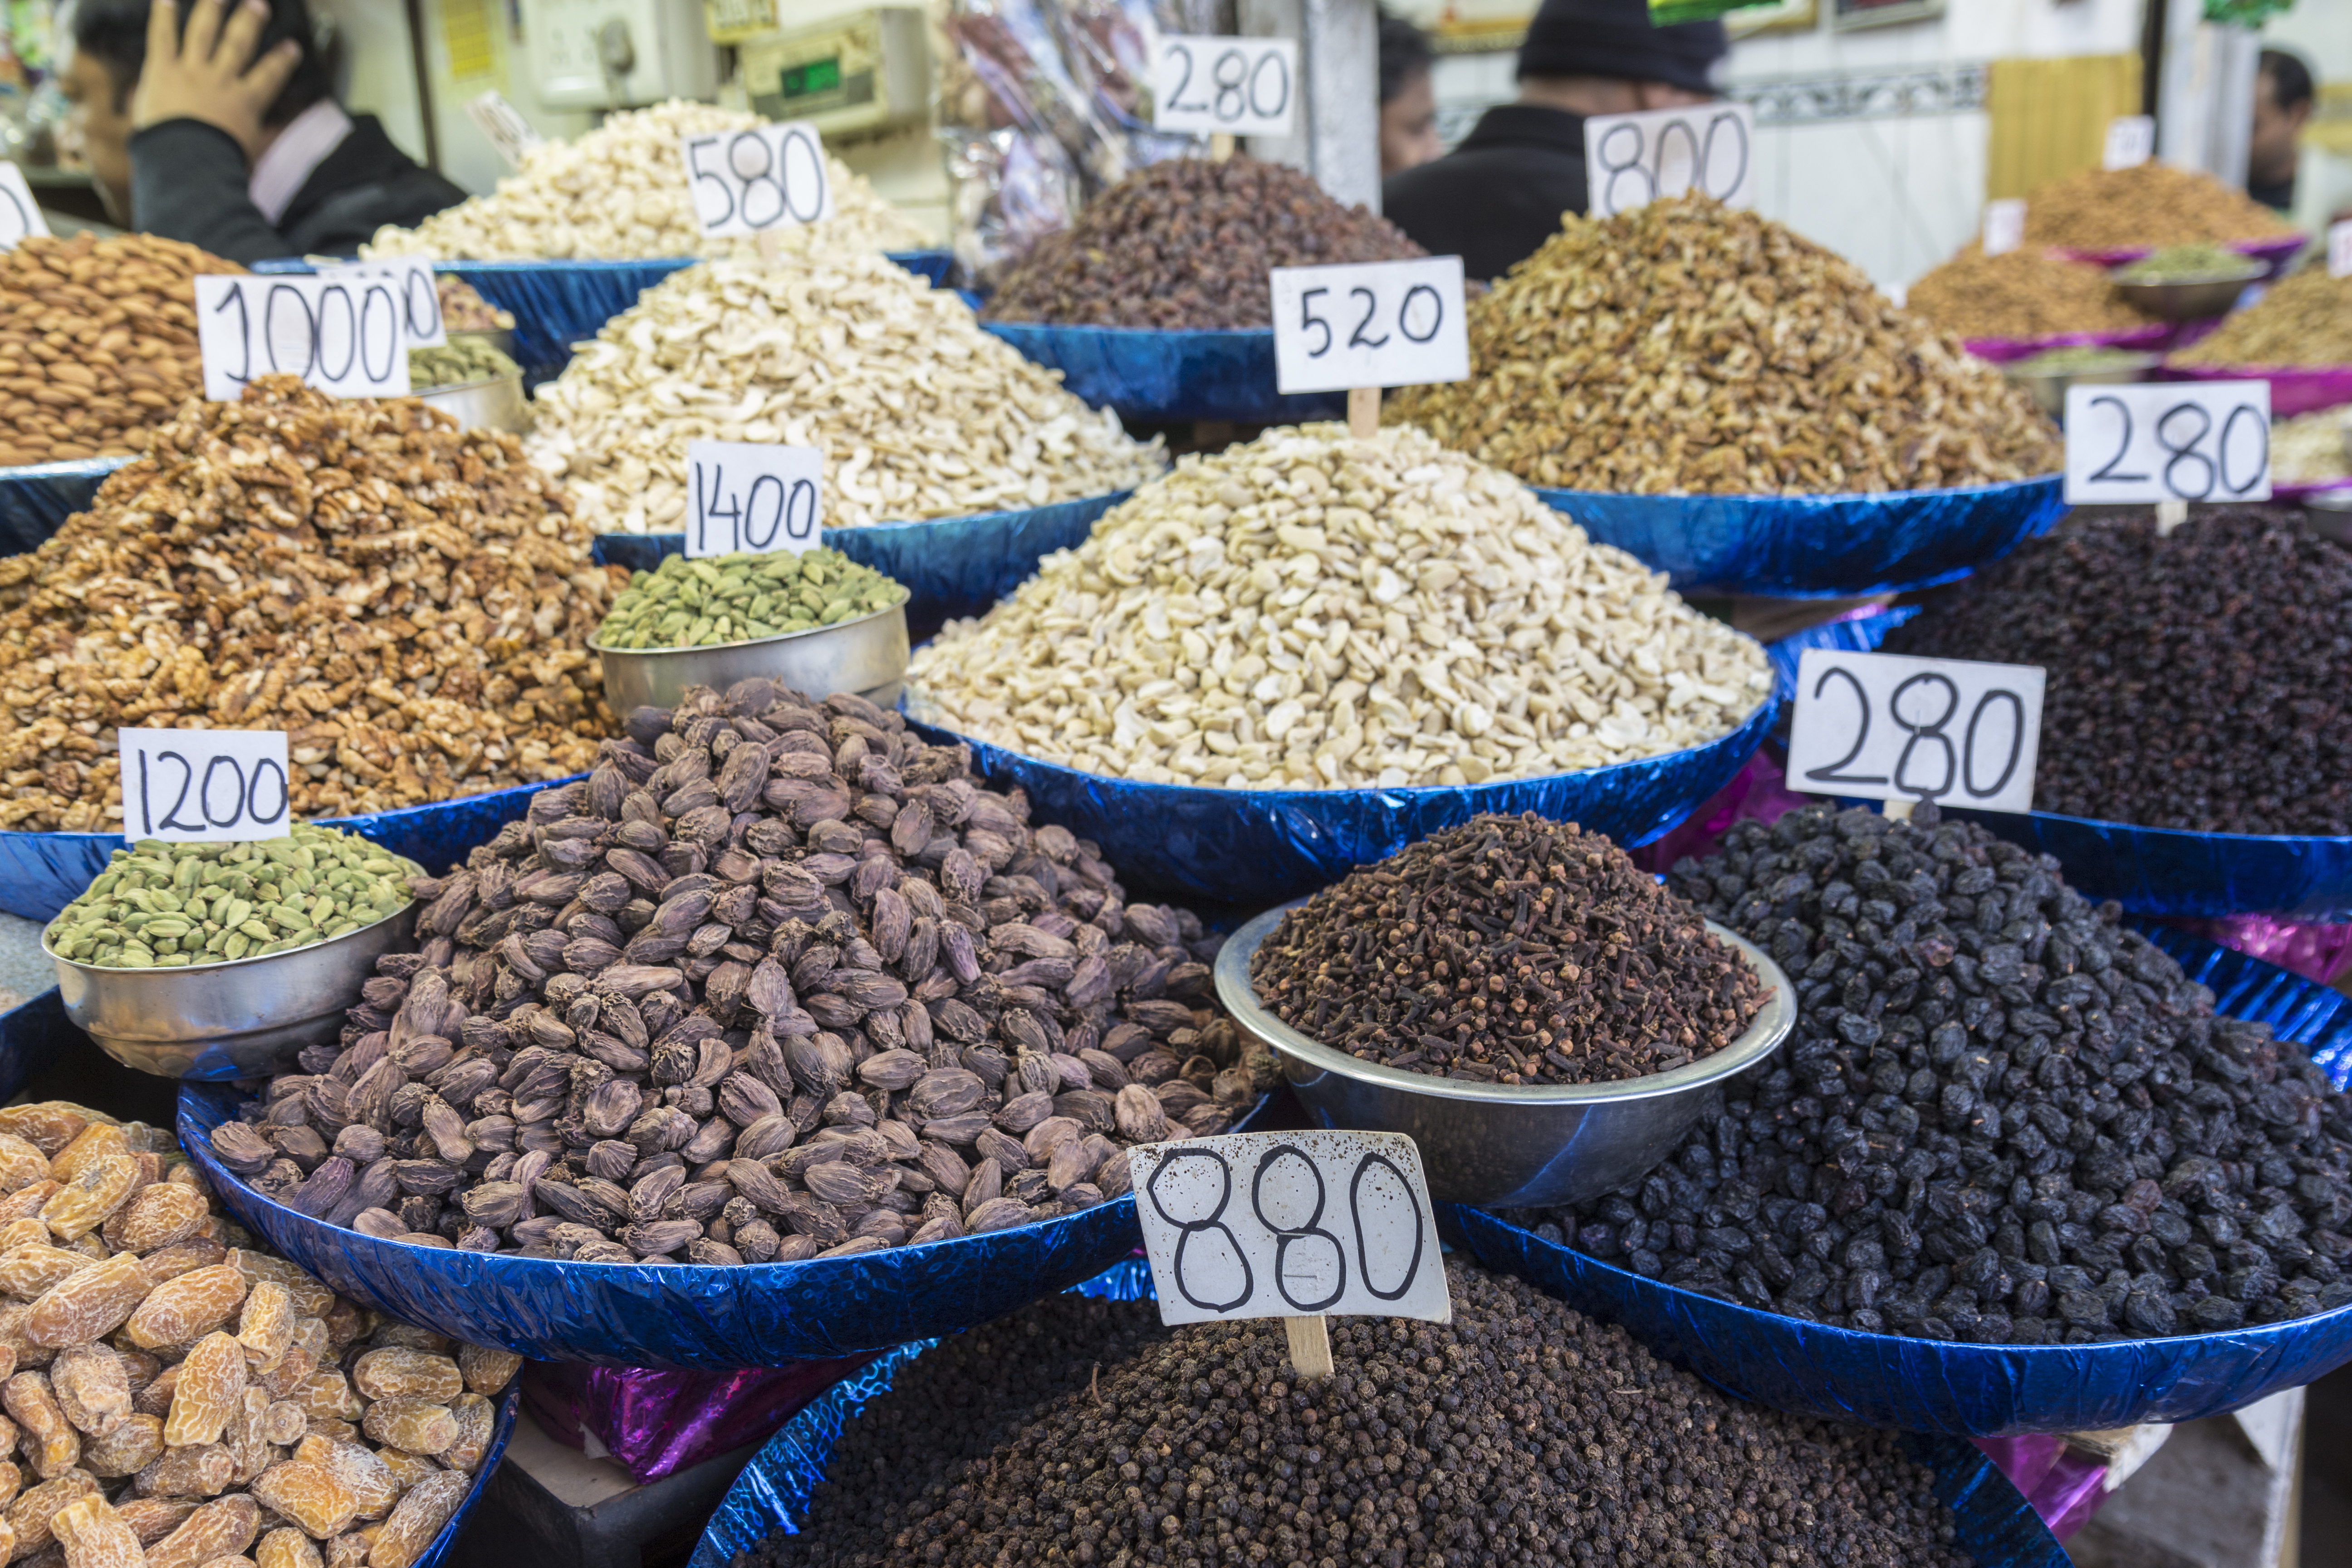 Herb and spice display of shop in spice market, chandni chowk. this market is famous and biggest spi